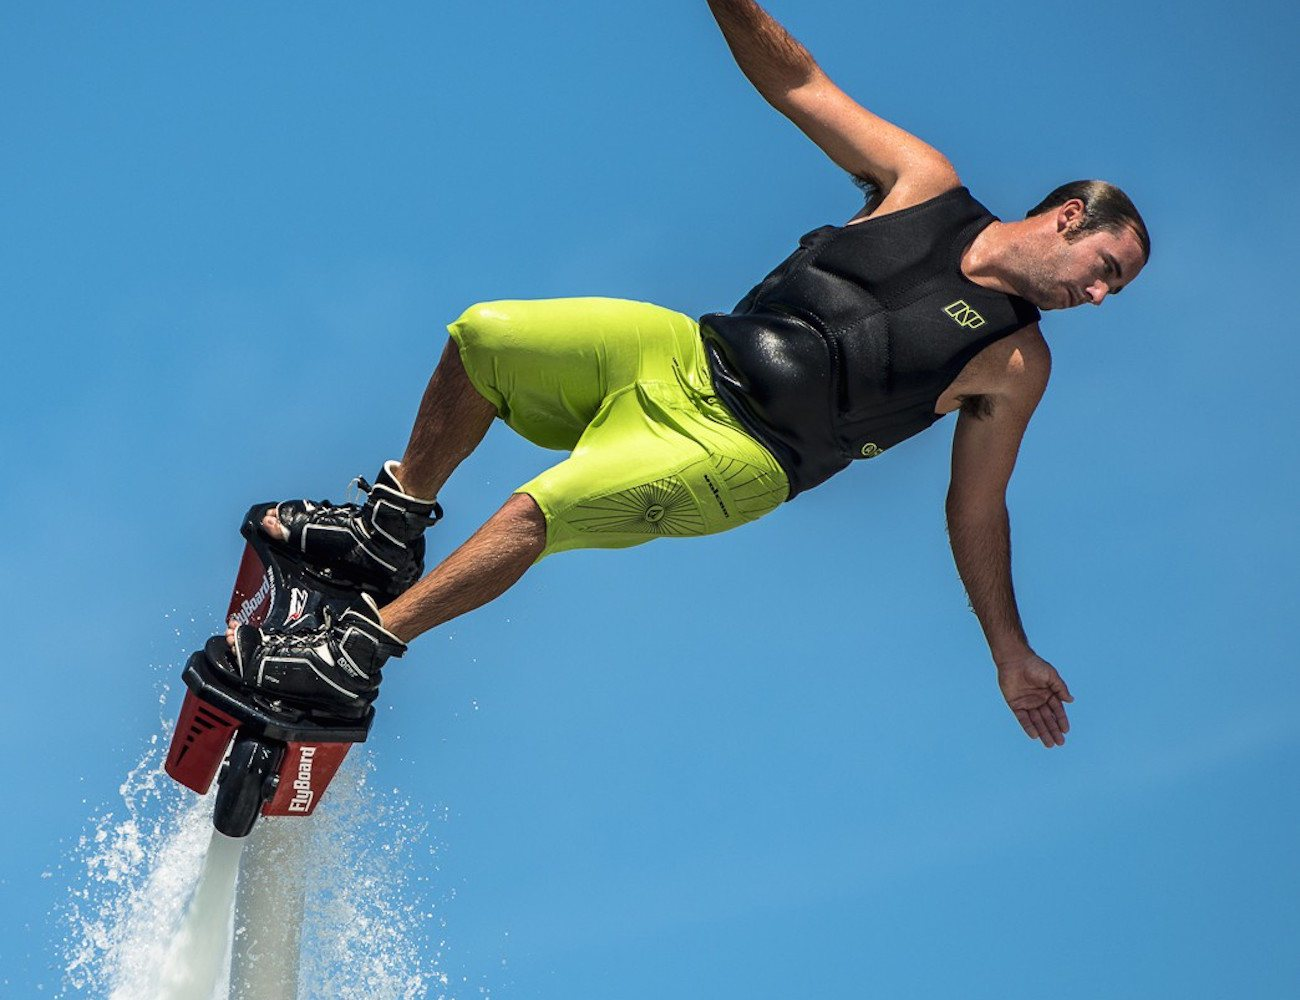 Flyboard+V3+Complete+Kit+By+Zapata